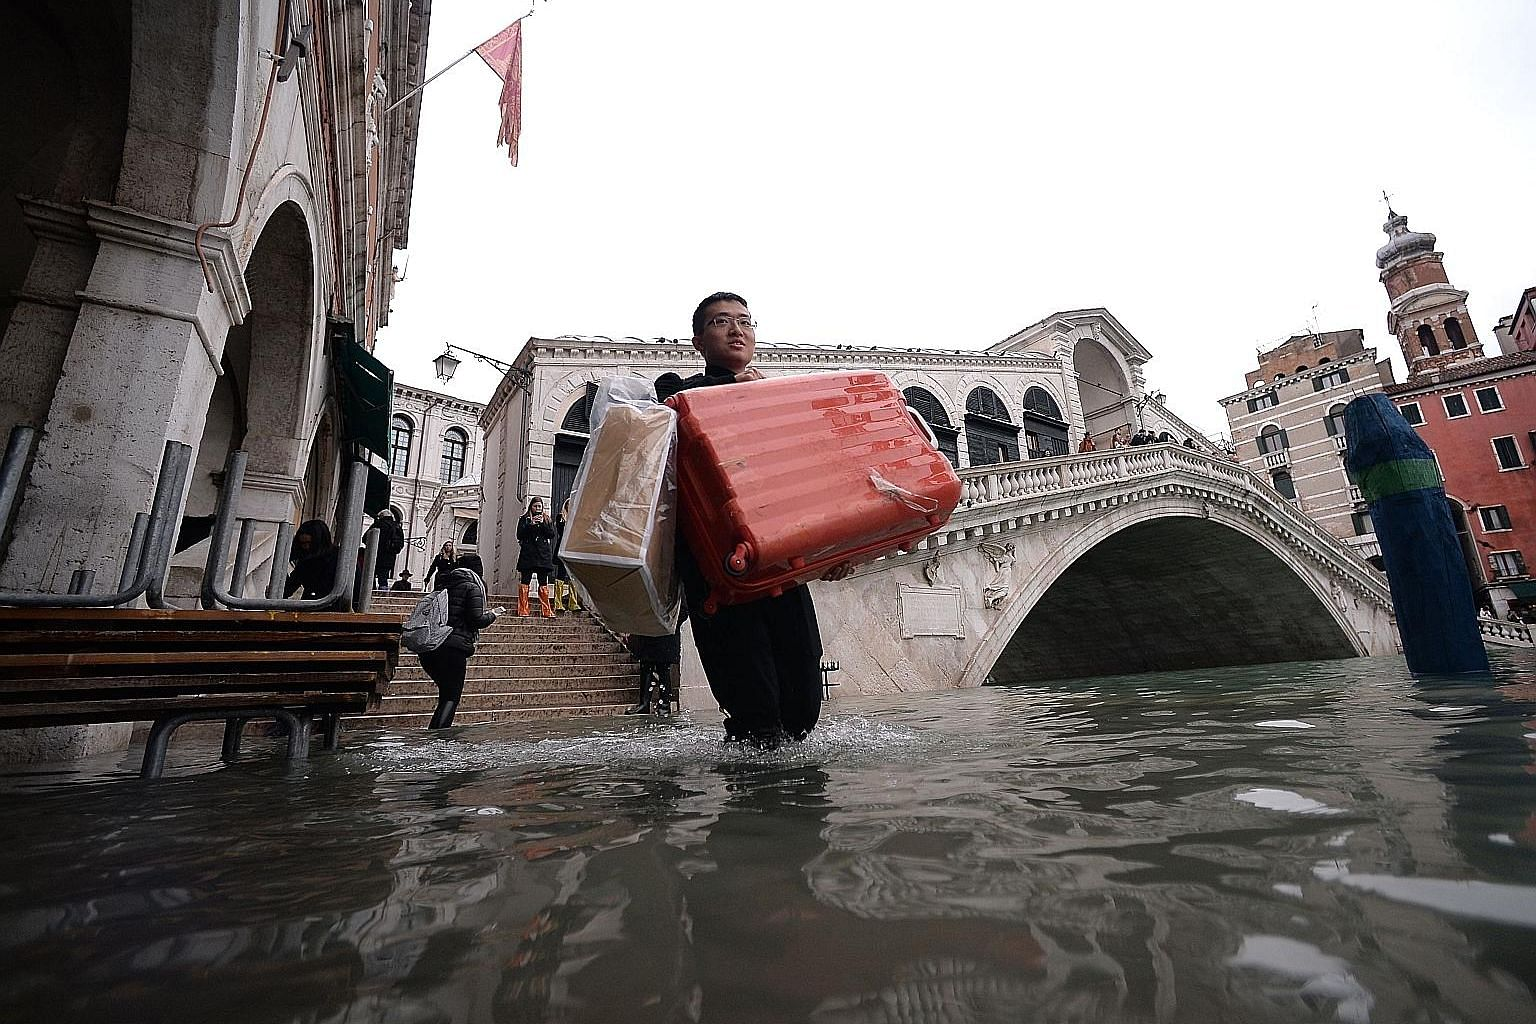 The historic city of Venice, Italy, was hit by major floods last month.